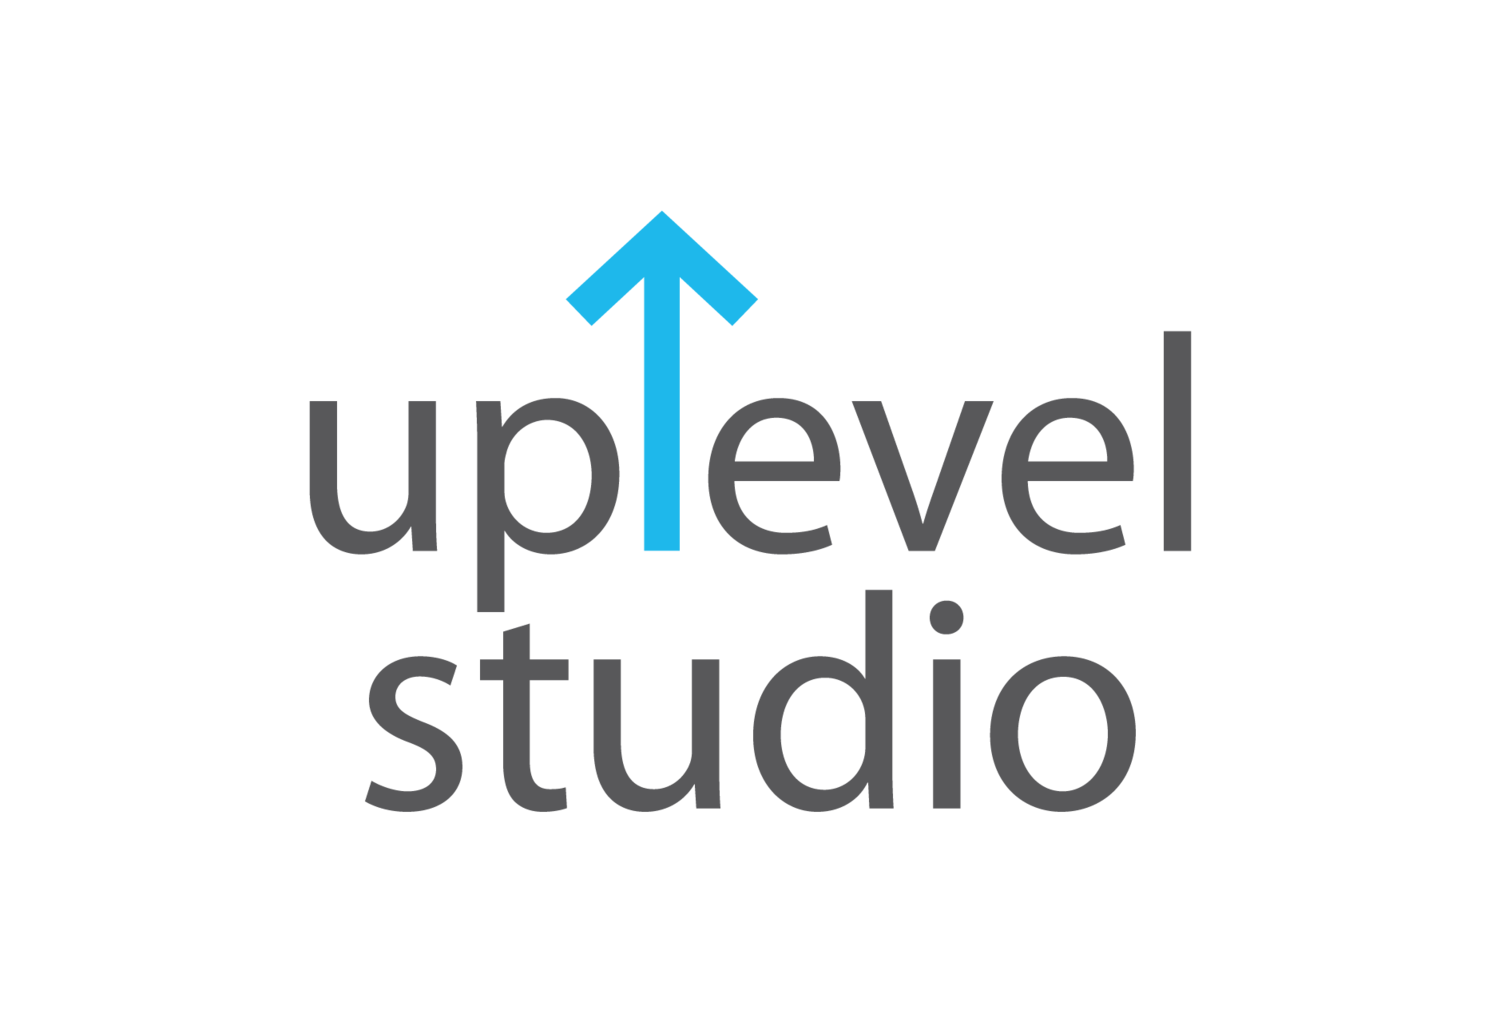 Uplevel Studio